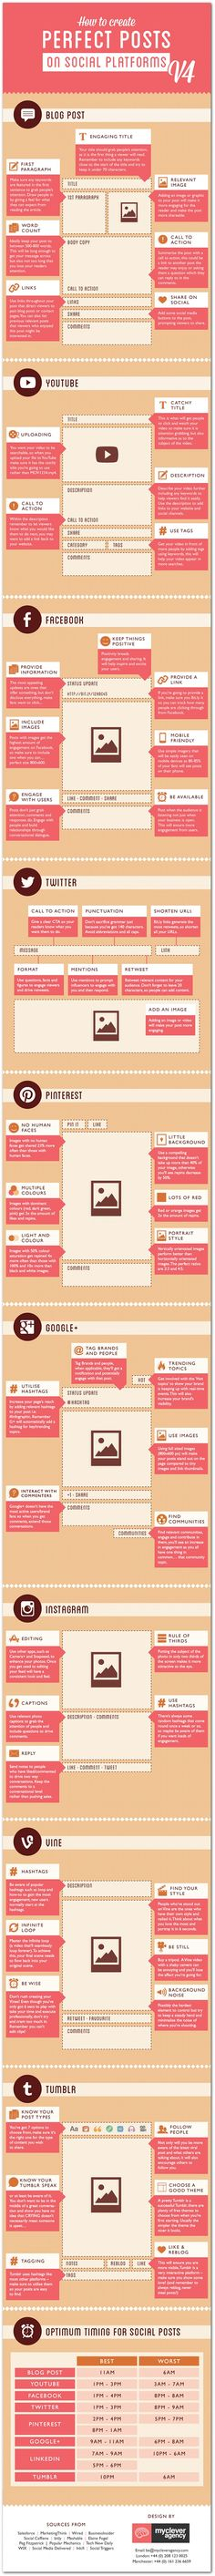 A guide to perfect social media posts | Articles | Home